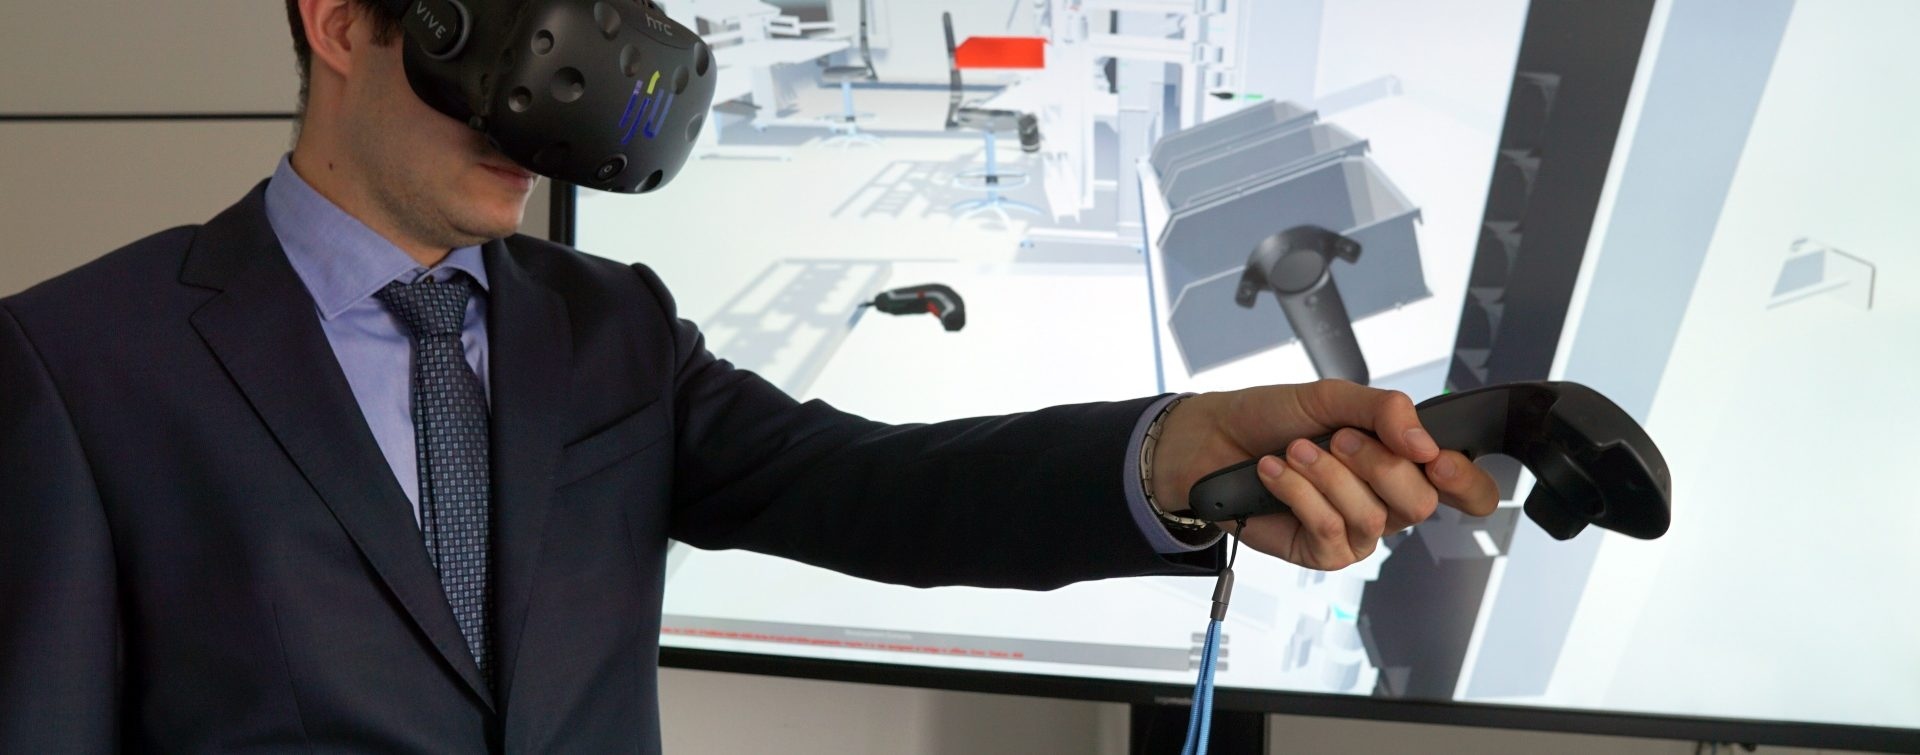 Interaktive Fabrikplanung mit Virtual Reality